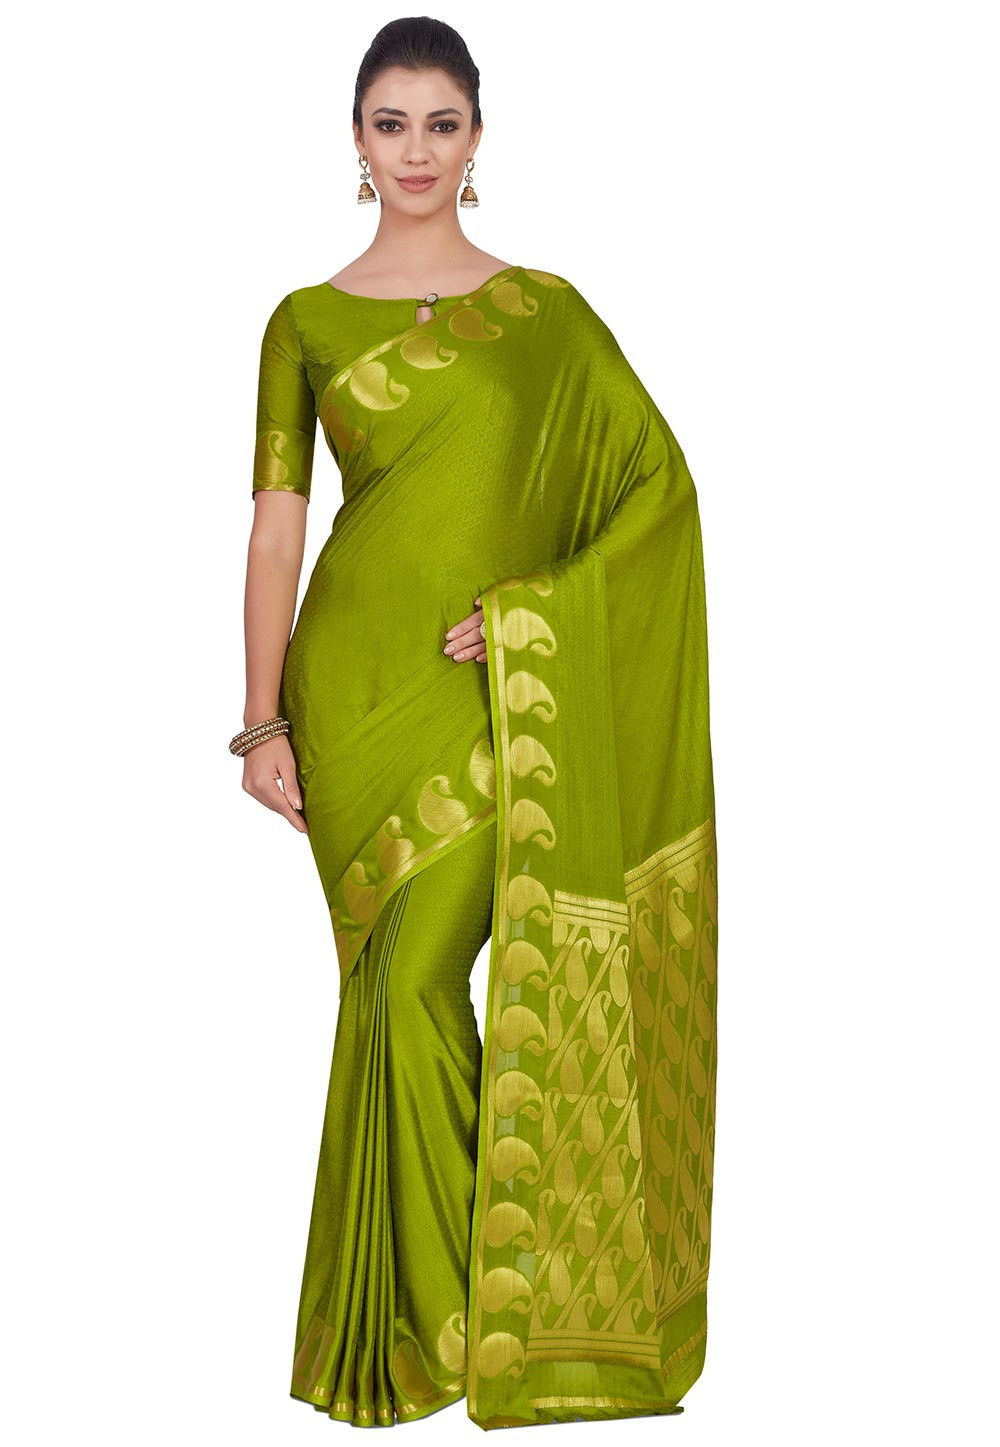 Woven Crepe Jacquard Saree in Olive Green